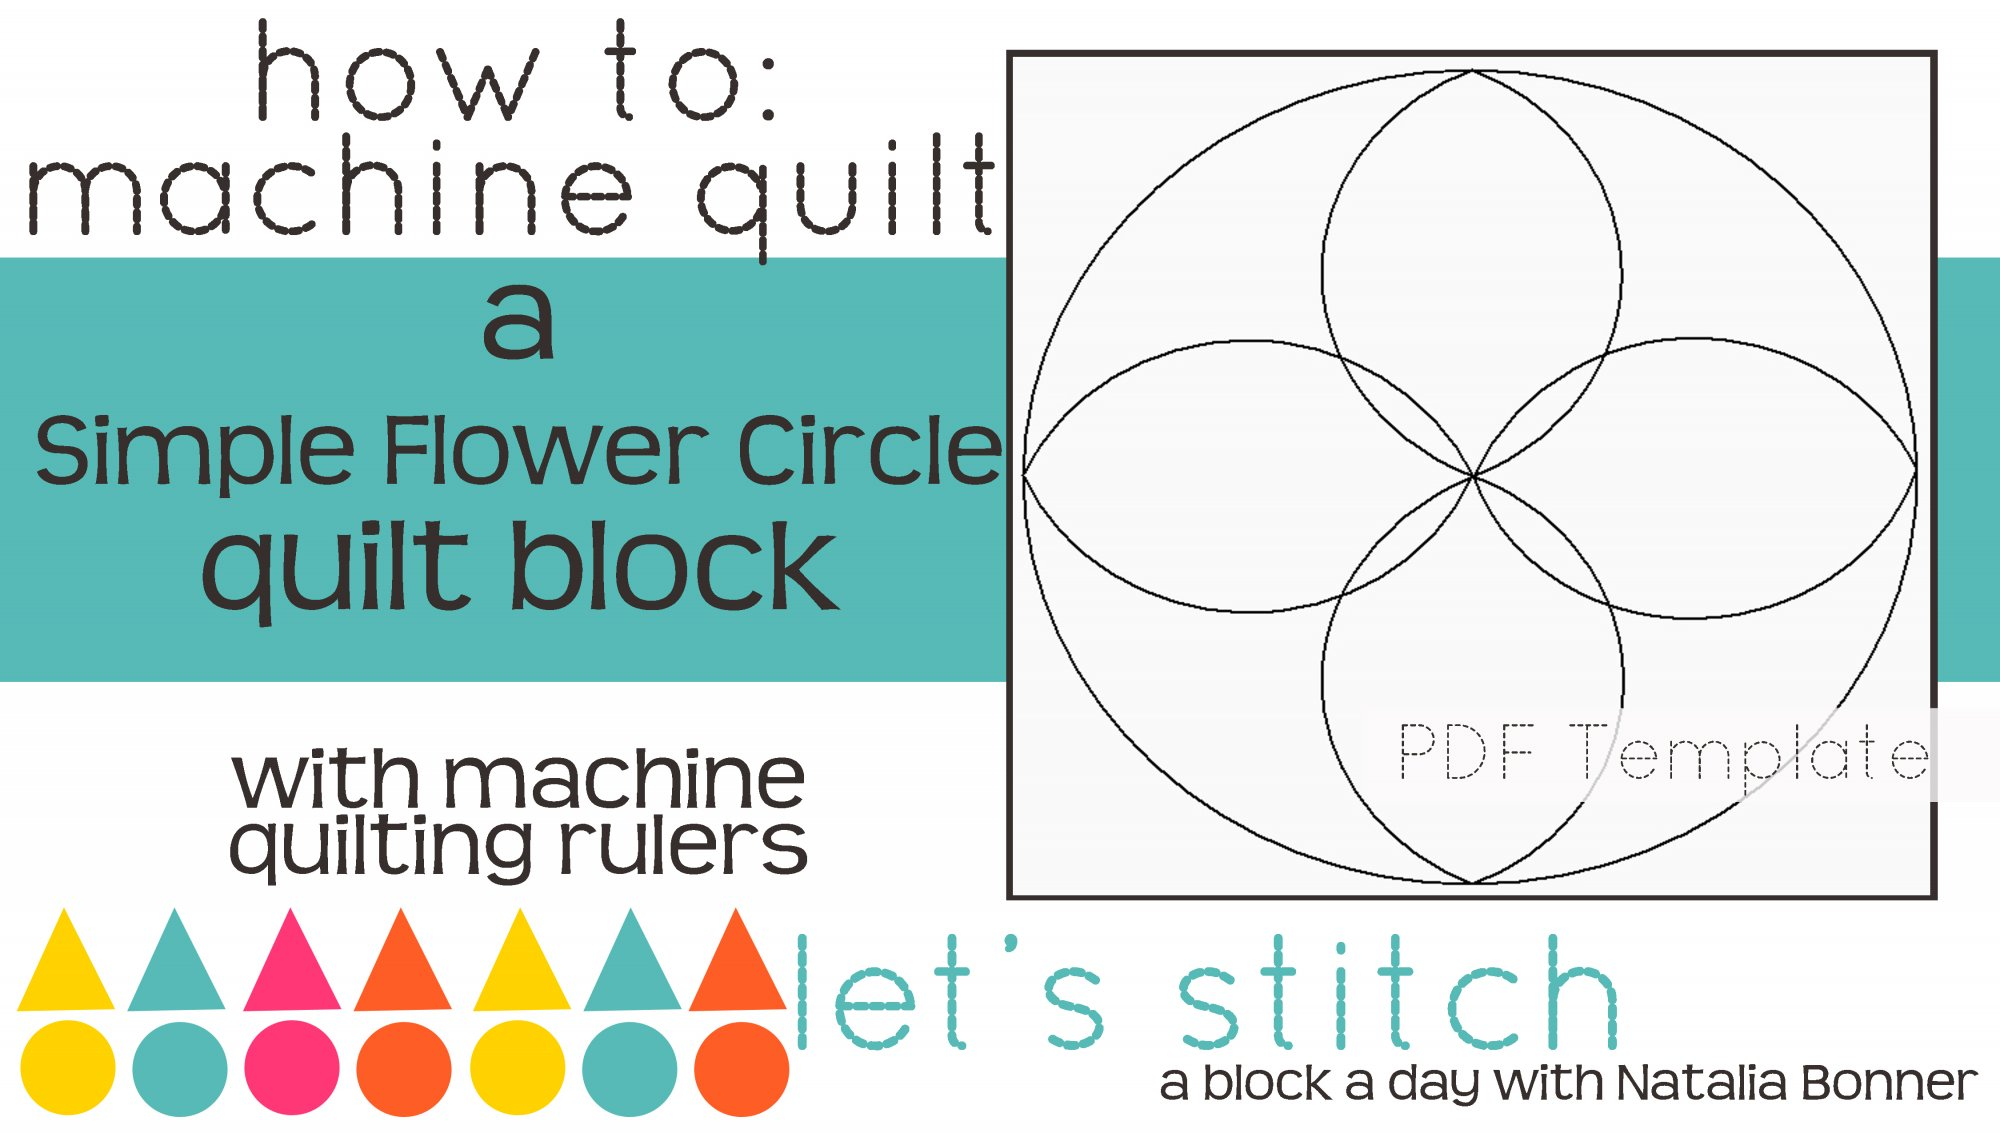 Let's Stitch - A Block a Day With Natalia Bonner - PDF -Simiple Flower Circle